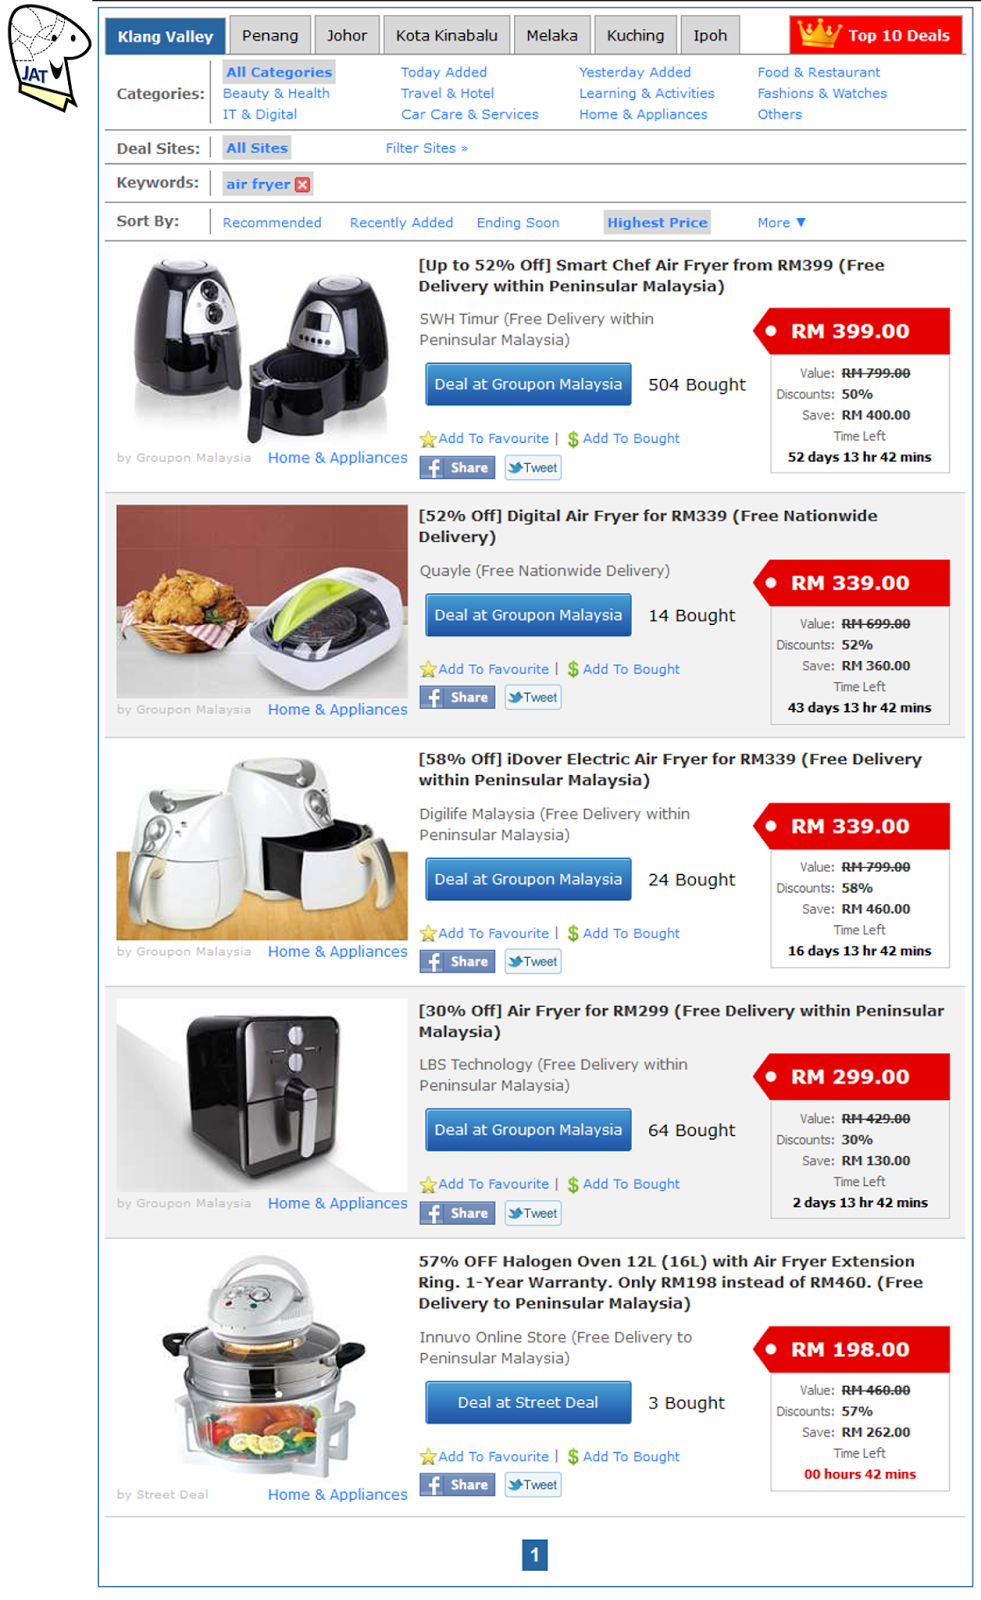 Air Fryers sold online.